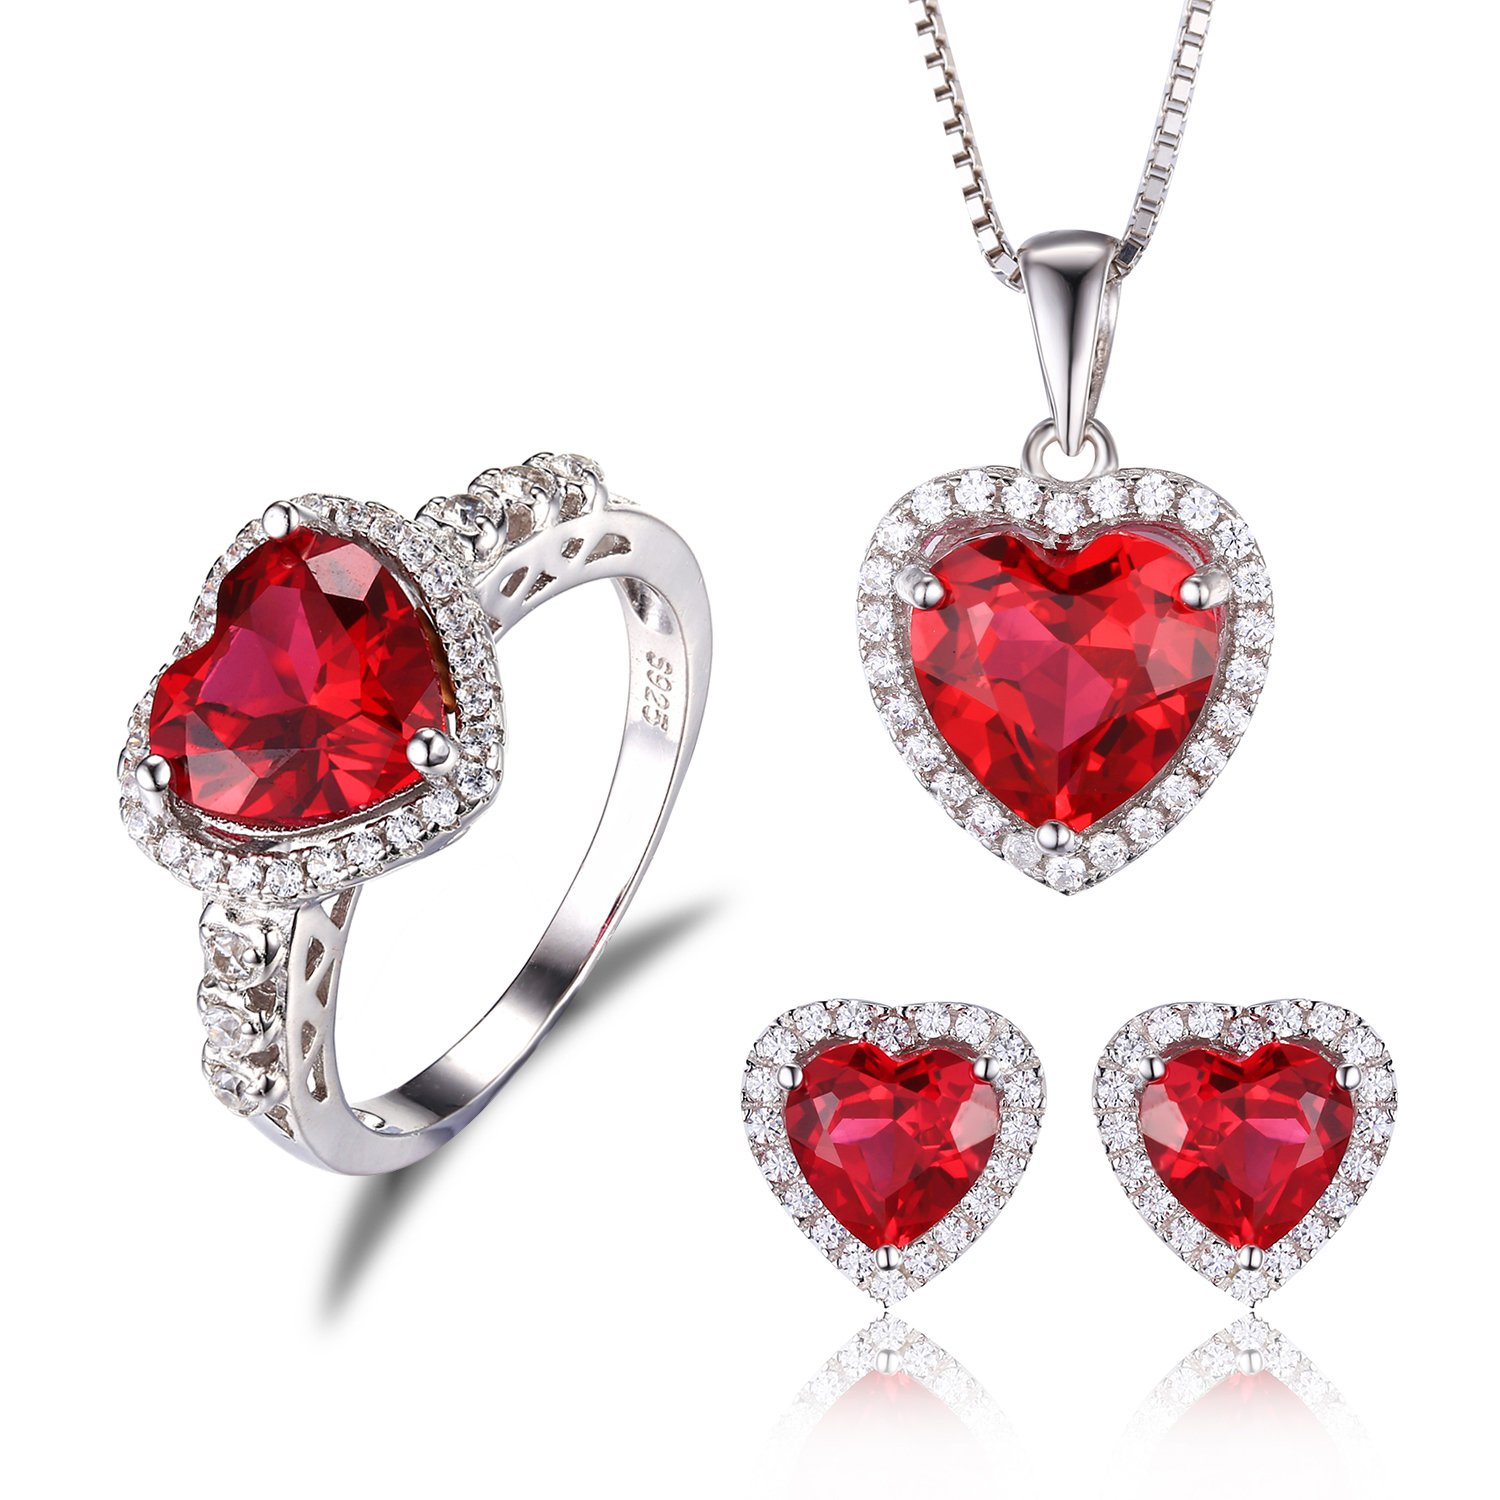 JewelryPalace Ruby Sets Ring Pendant Necklace Stud Earrings 925 Sterling Silver Size 7